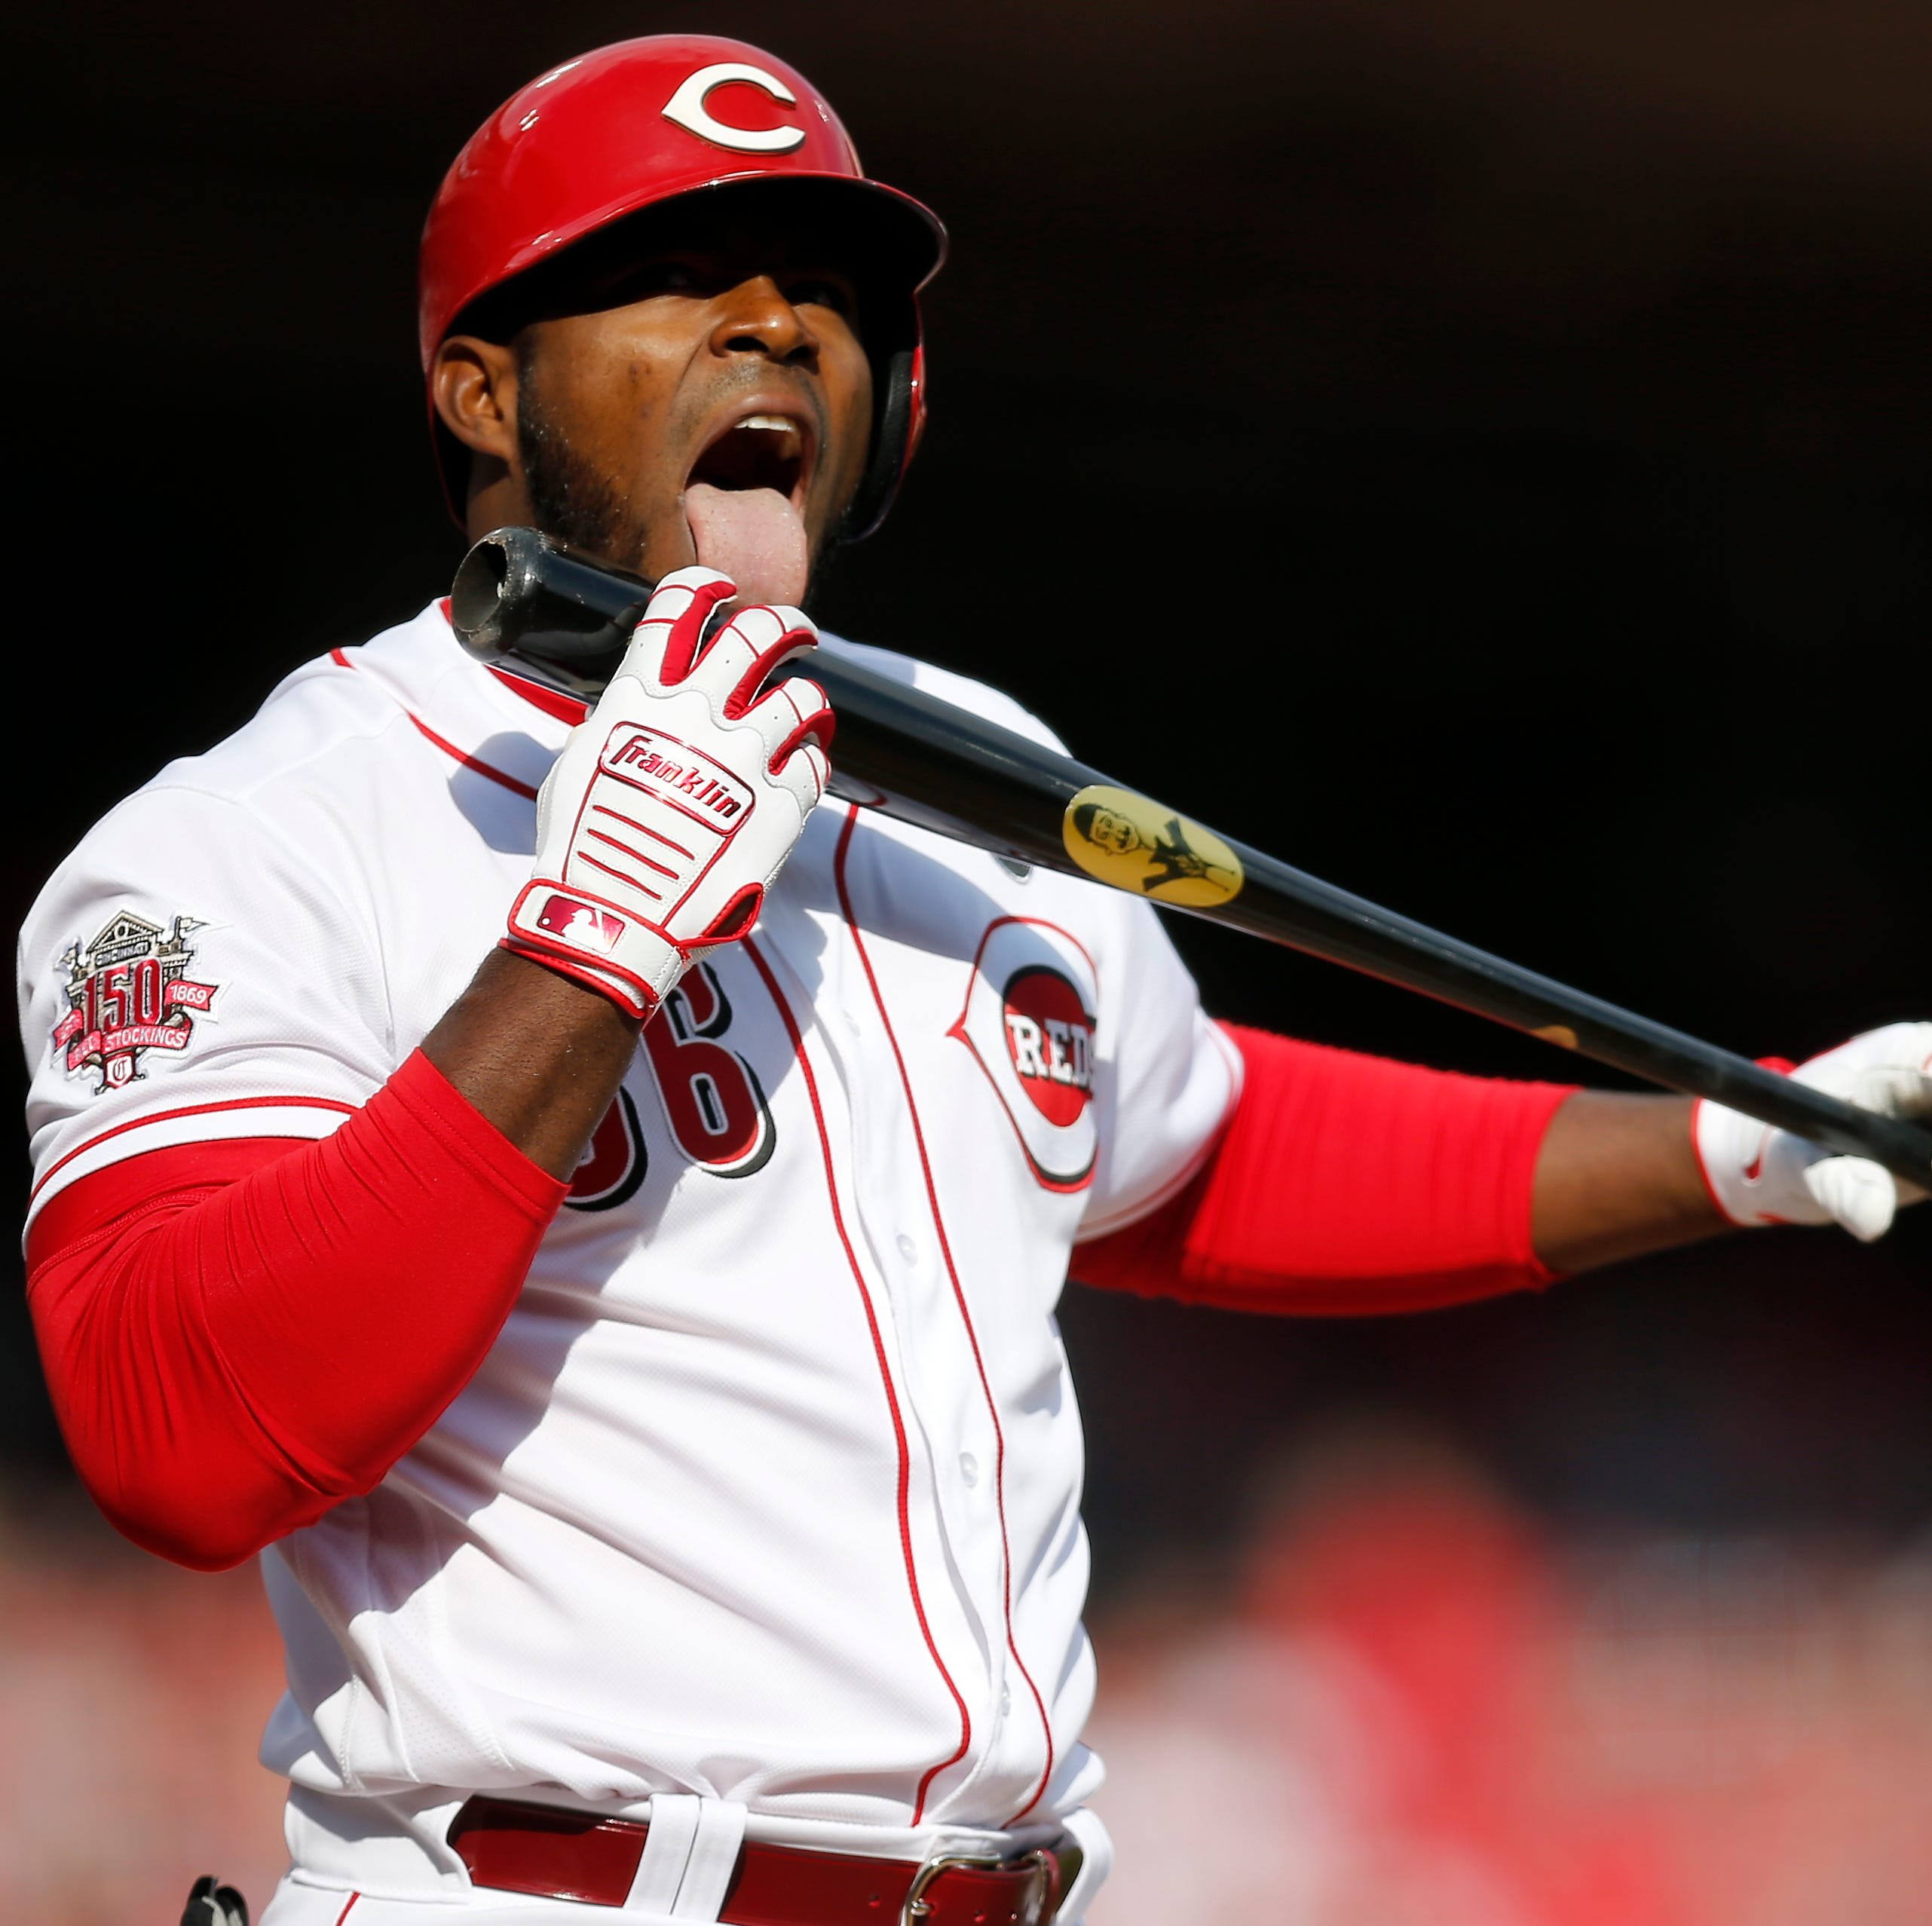 Yasiel Puig says he thinks about ice cream when licking his bat